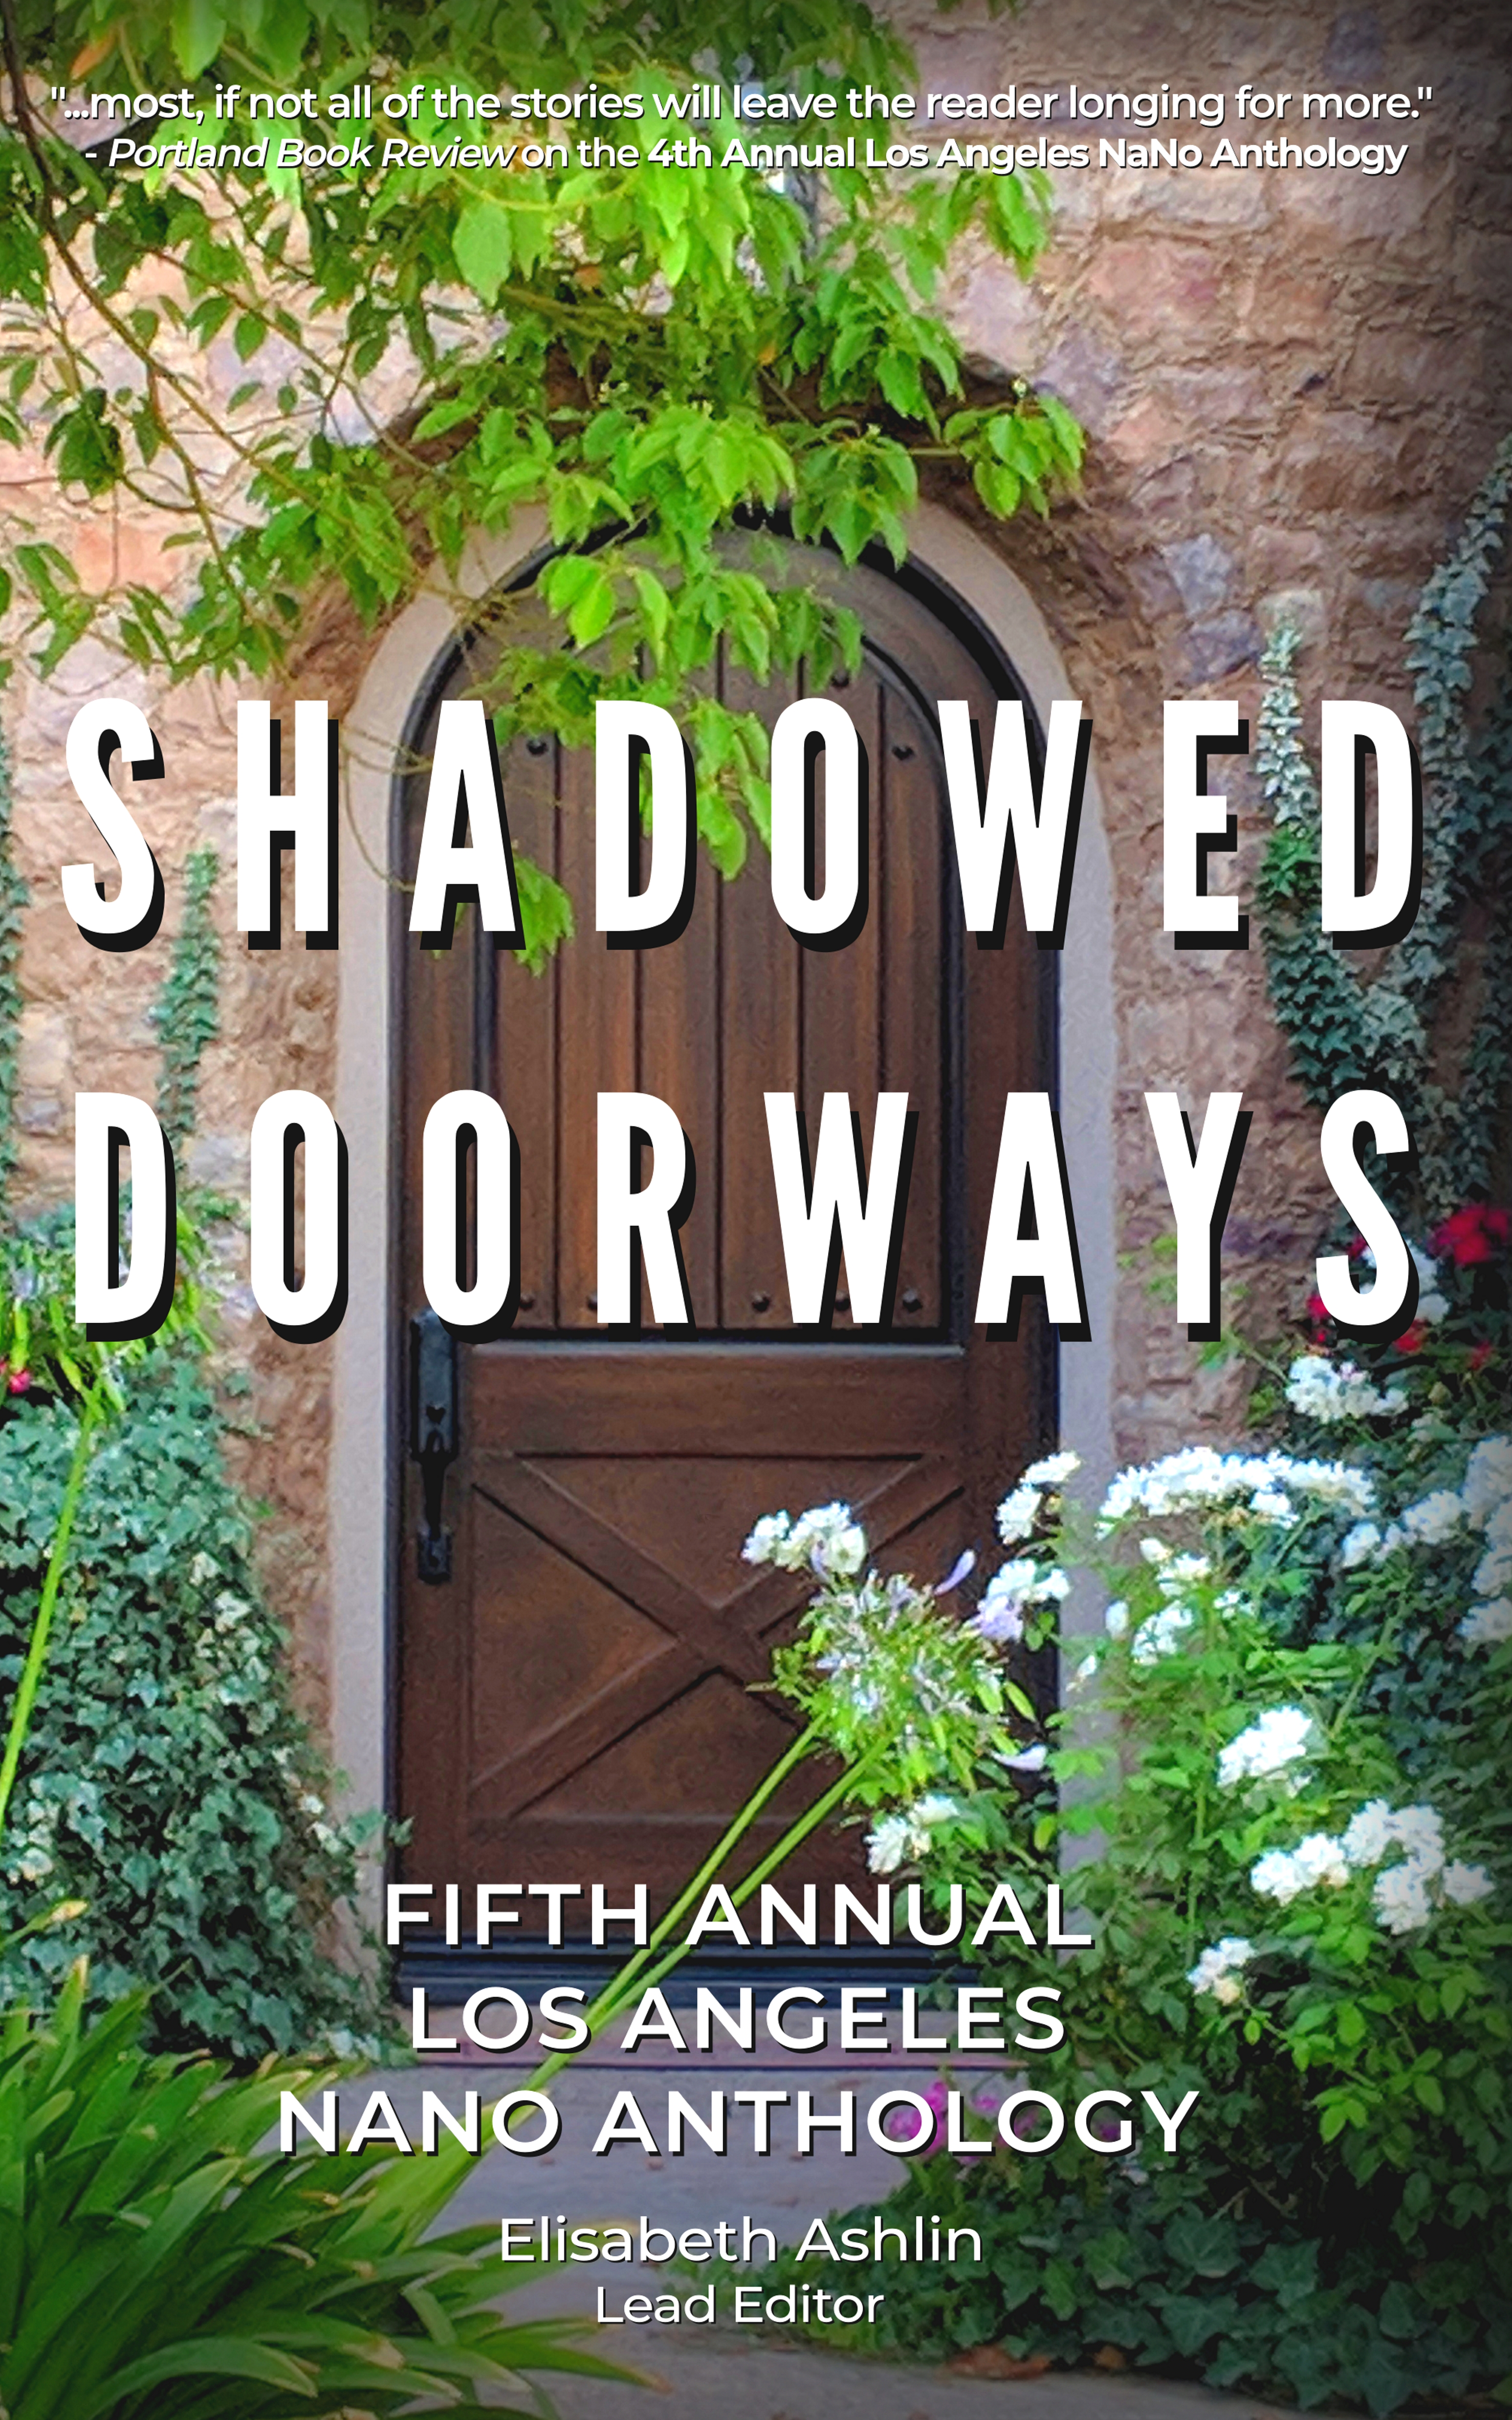 Shadowed Doorways eBook Cover 1.jpg